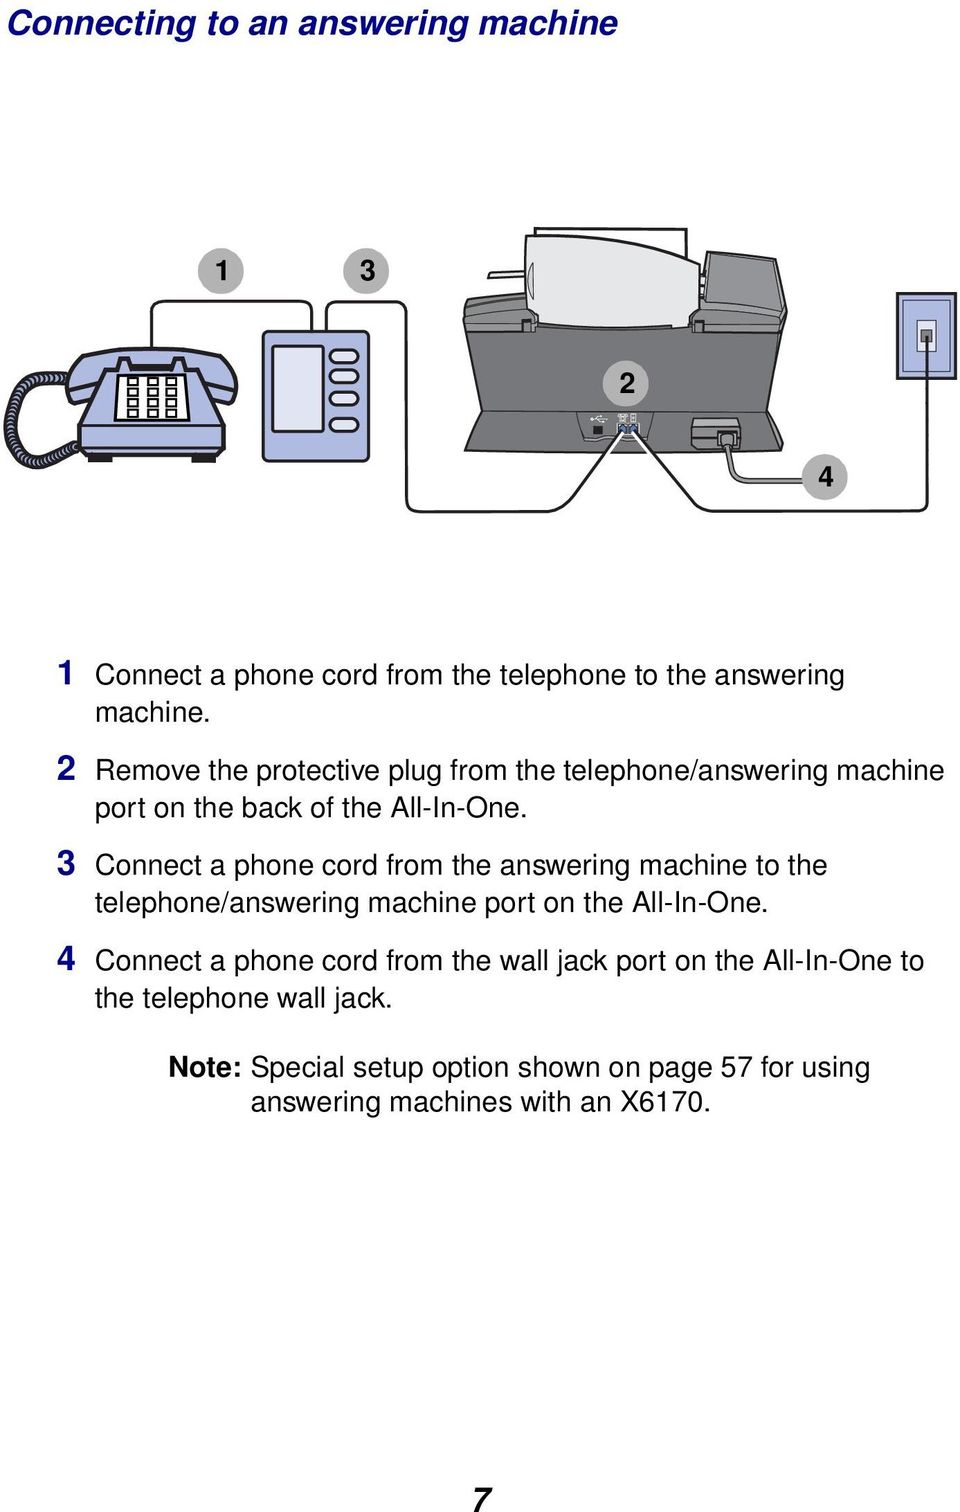 3 Connect a phone cord from the answering machine to the telephone/answering machine port on the All-In-One.